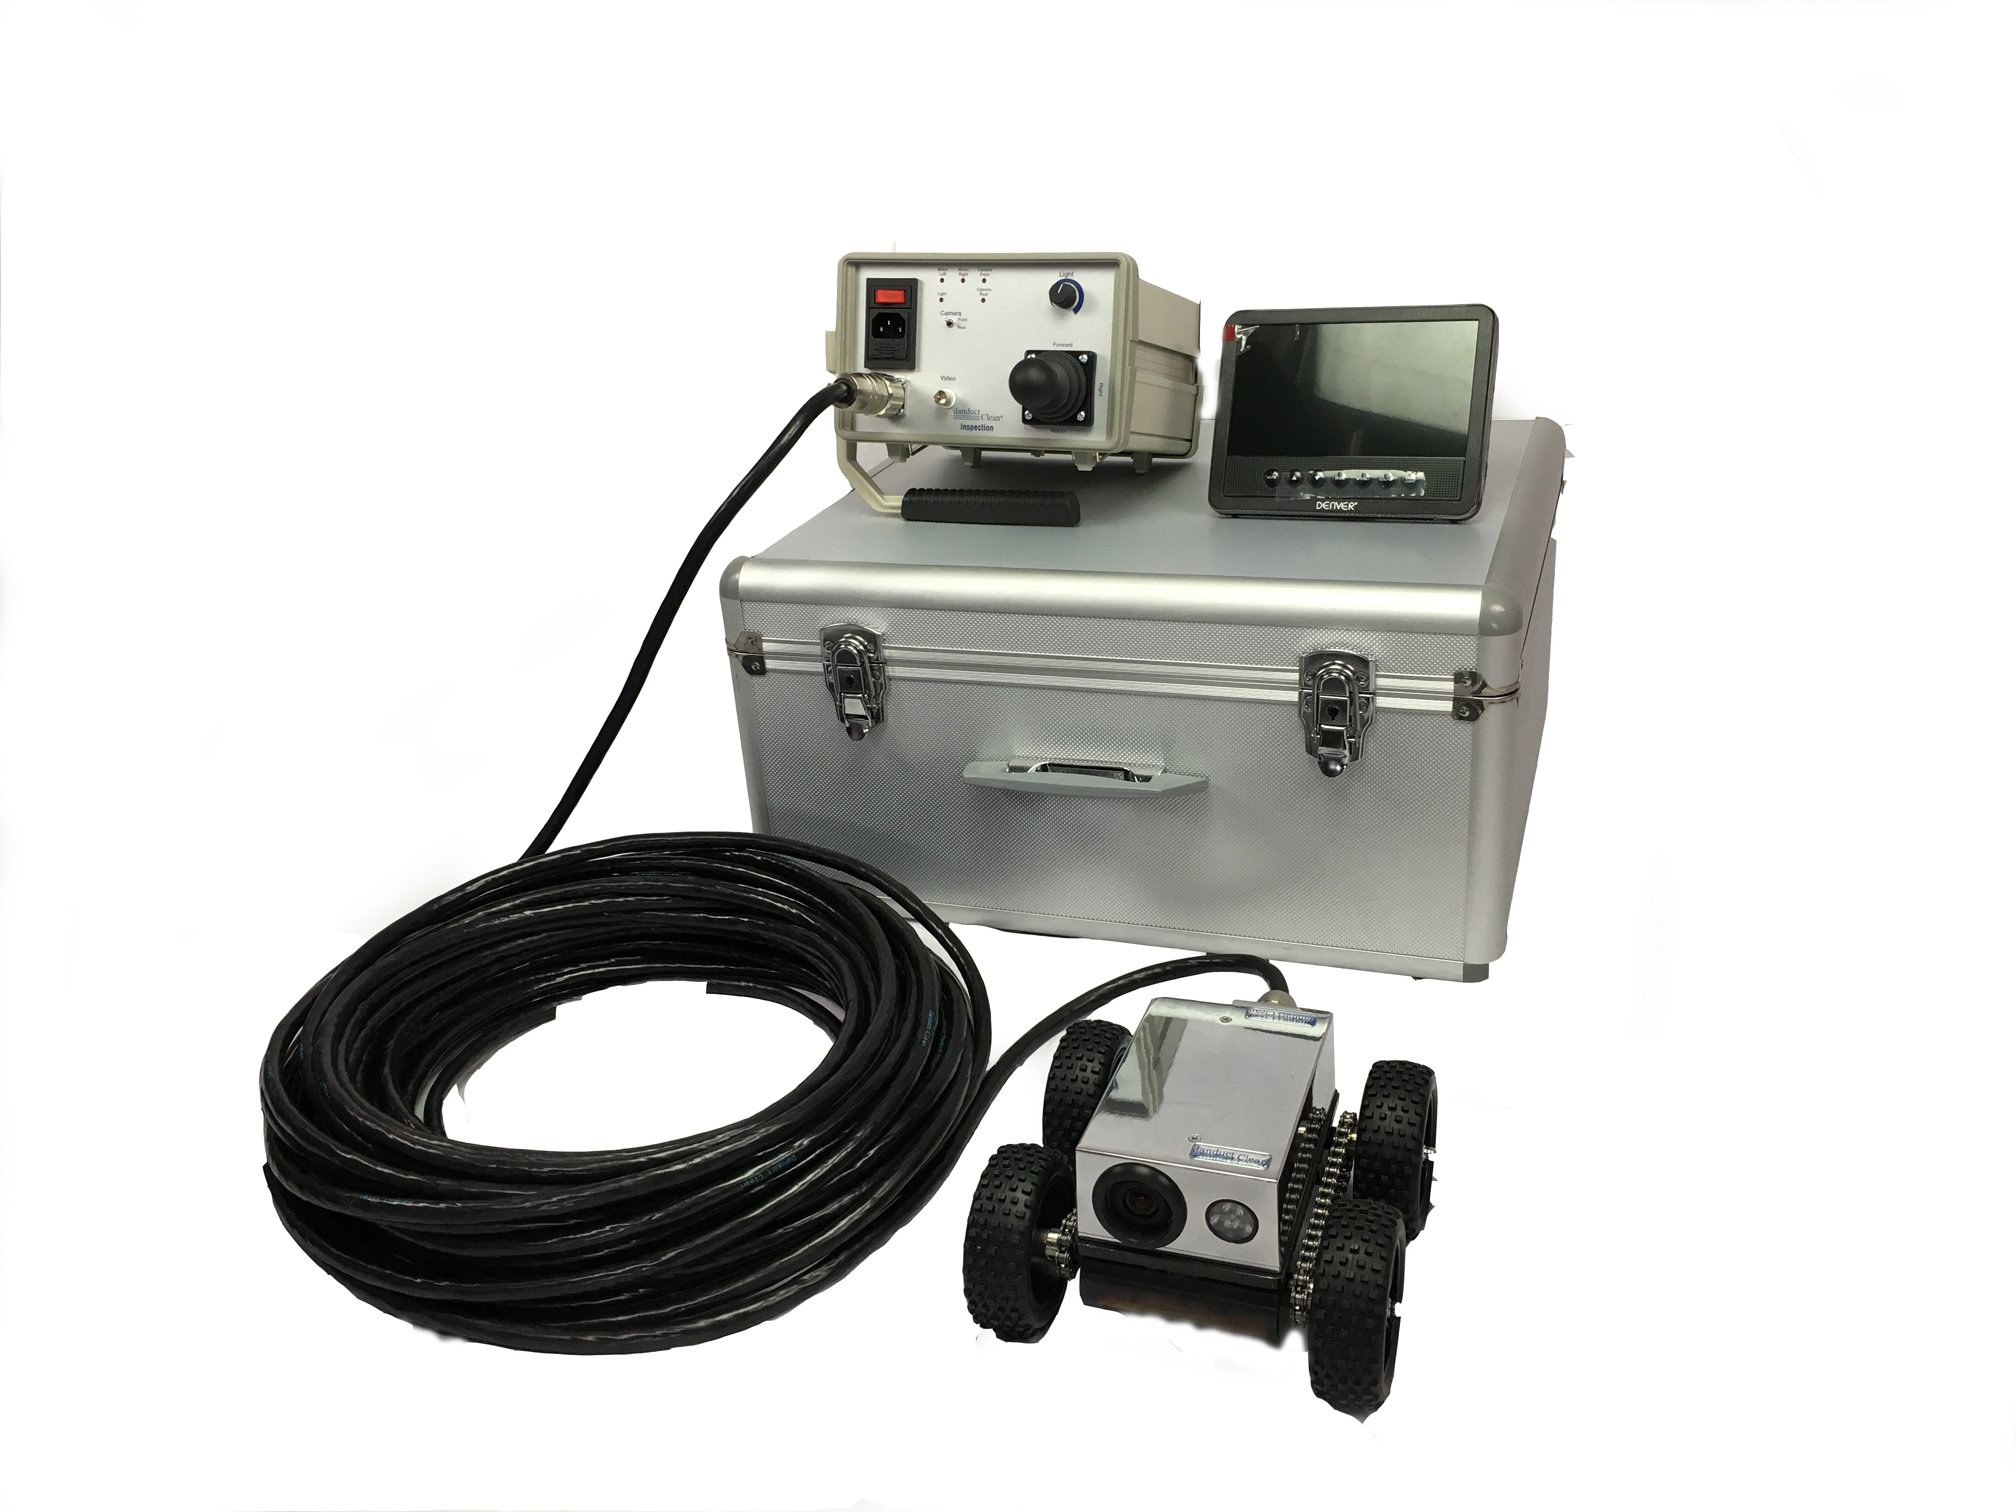 Inspection robot, Control box, LCD/TV Monitor, 30m cable and Transport box